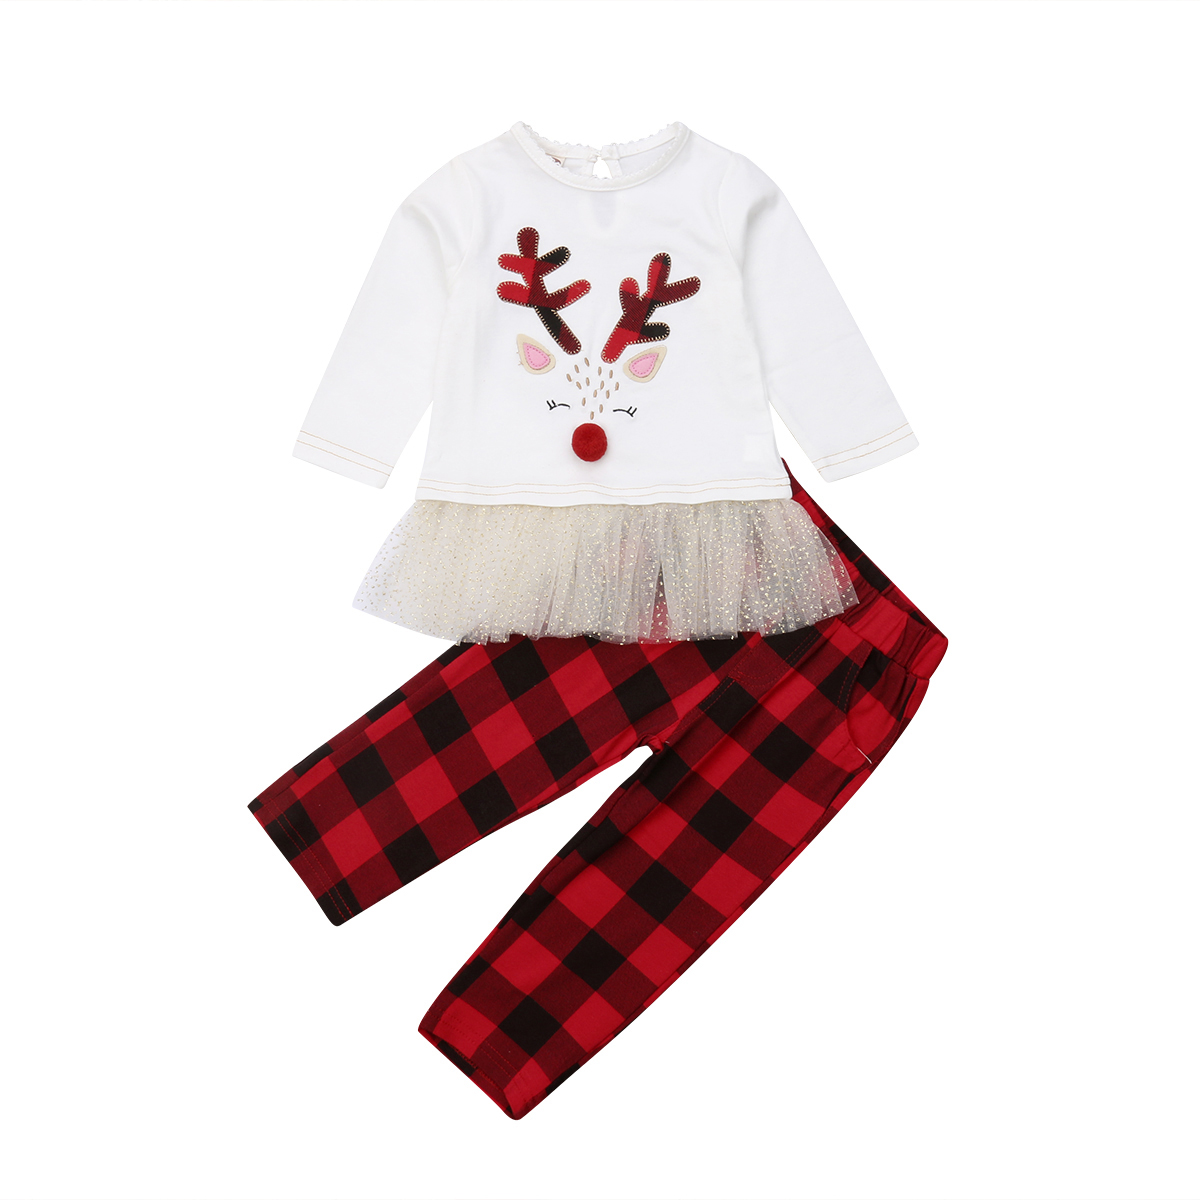 2PCS Toddler Kids Baby Girls Long Sleeve Tops Plaid Pants Outfits Clothes Sets